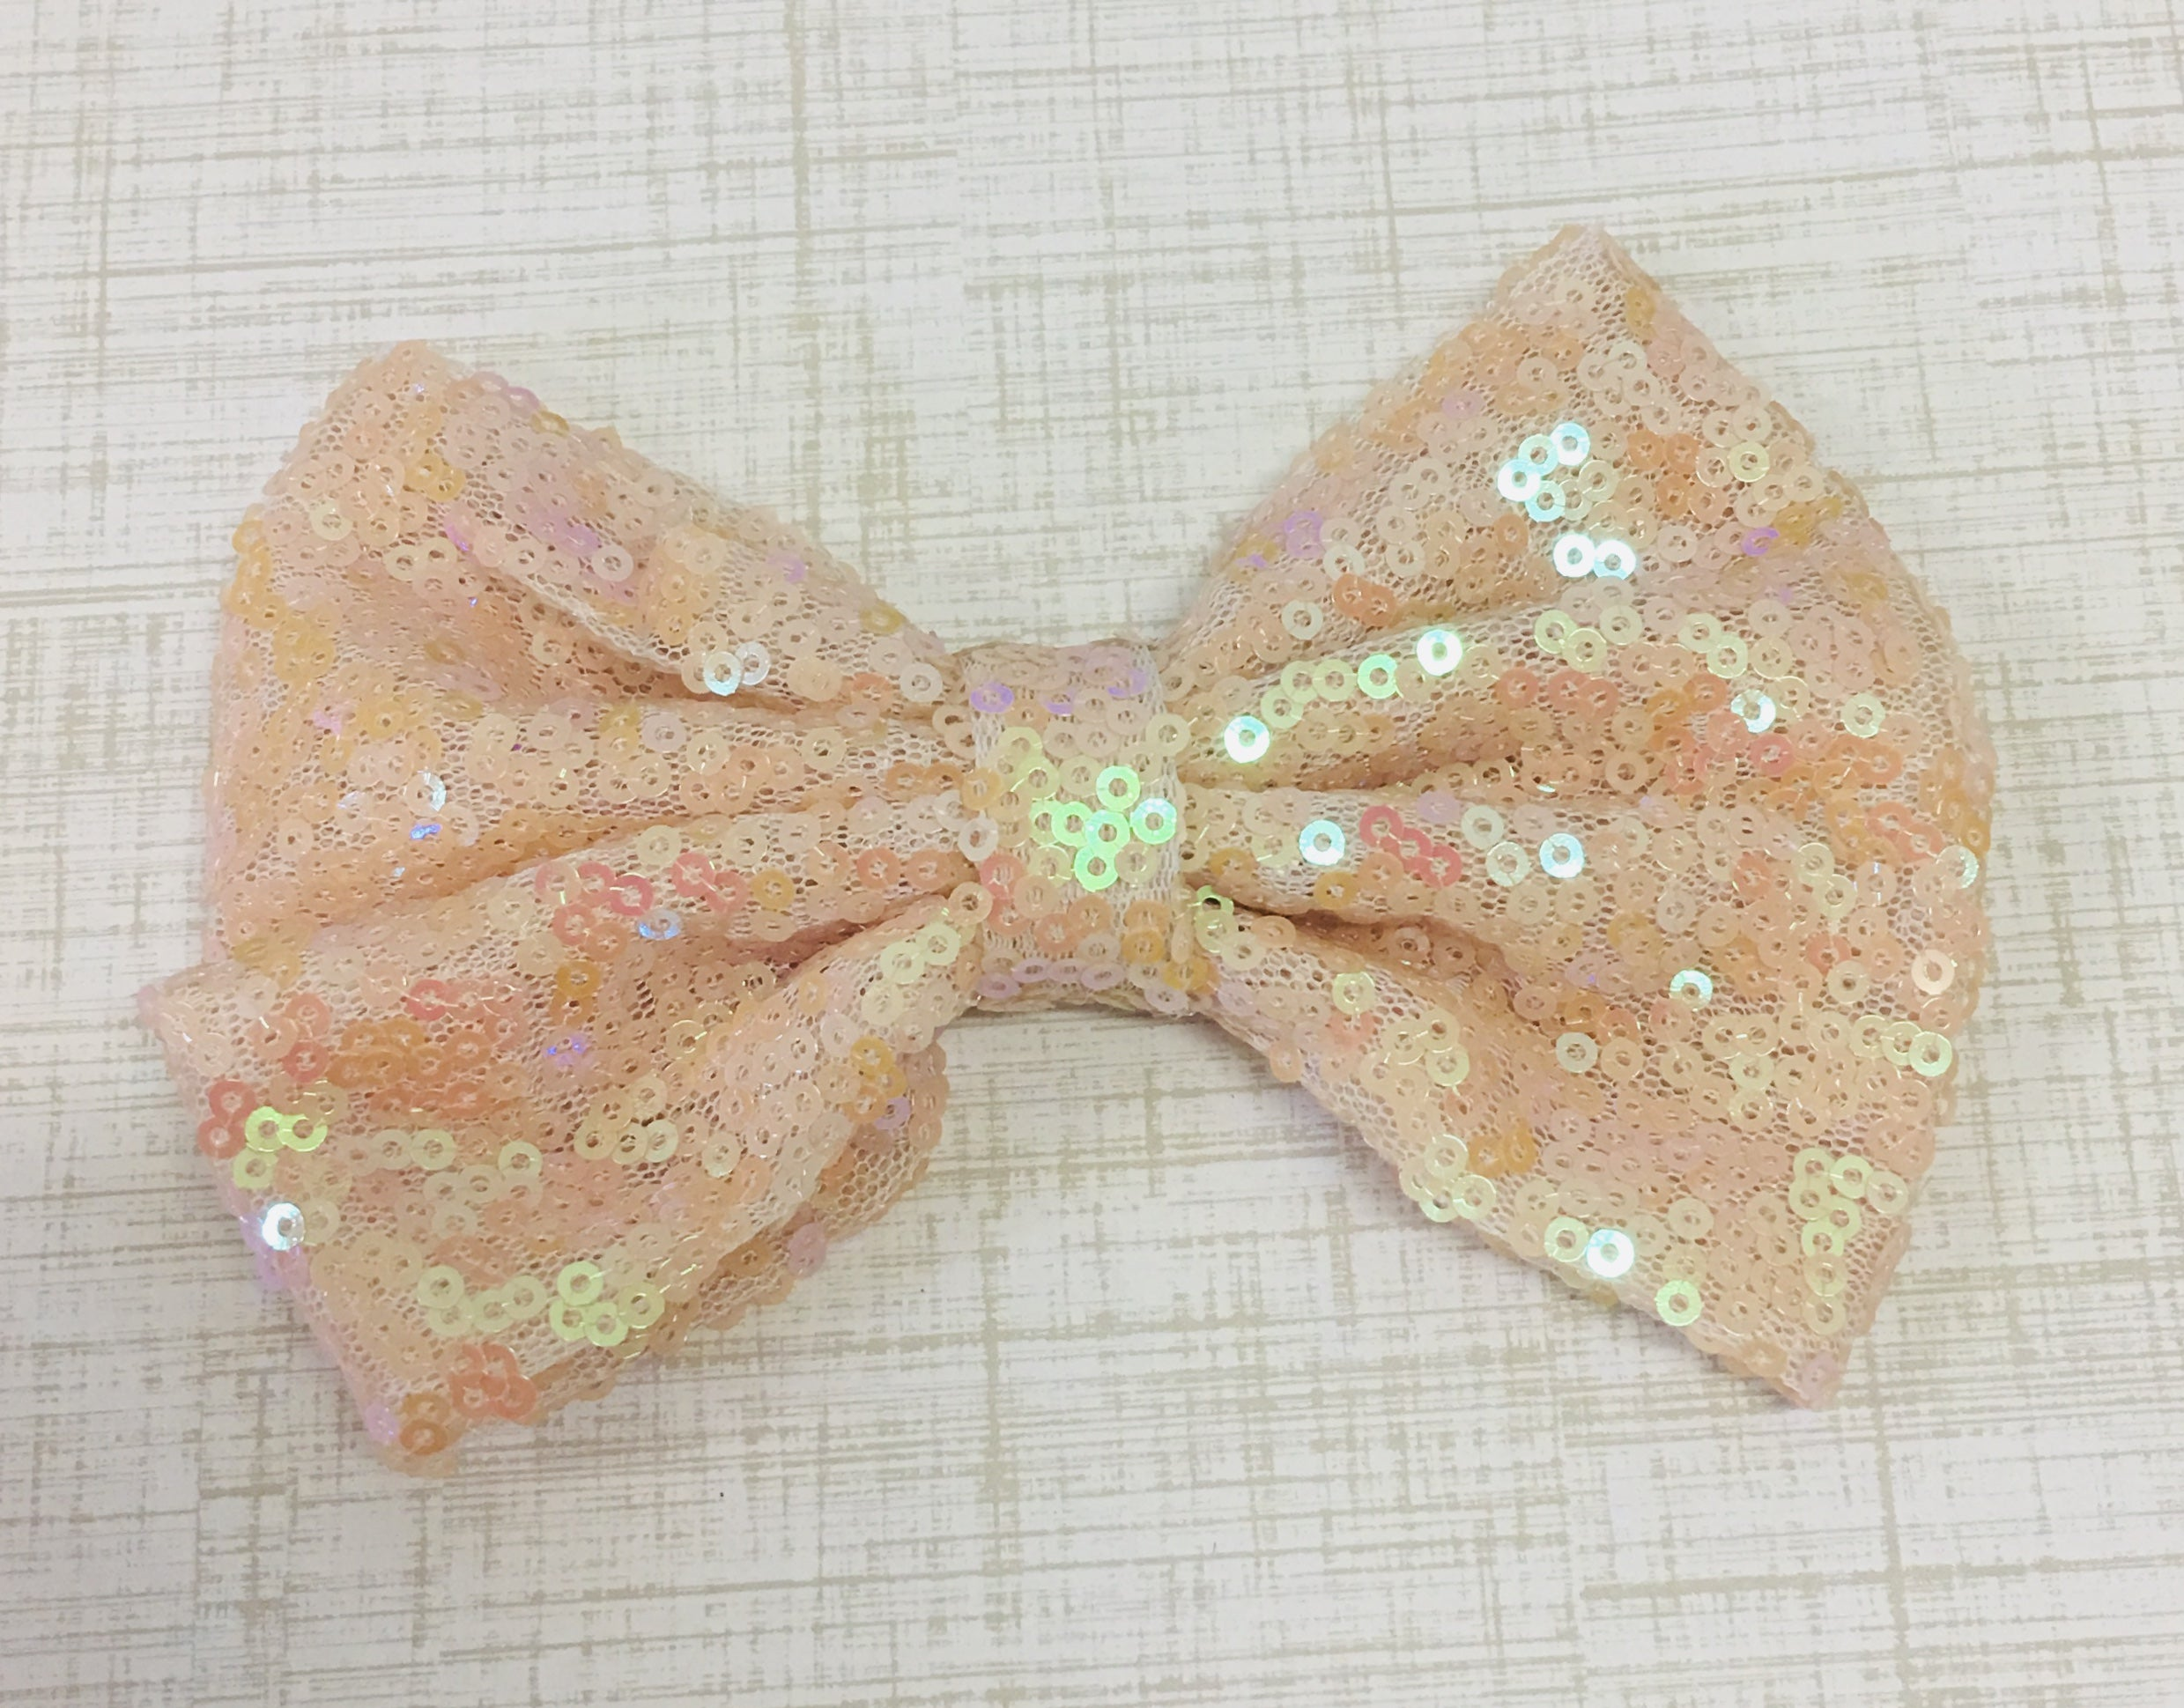 X Large Sequin Bow - Iridescent Pale Peach - shabbyflowers.com